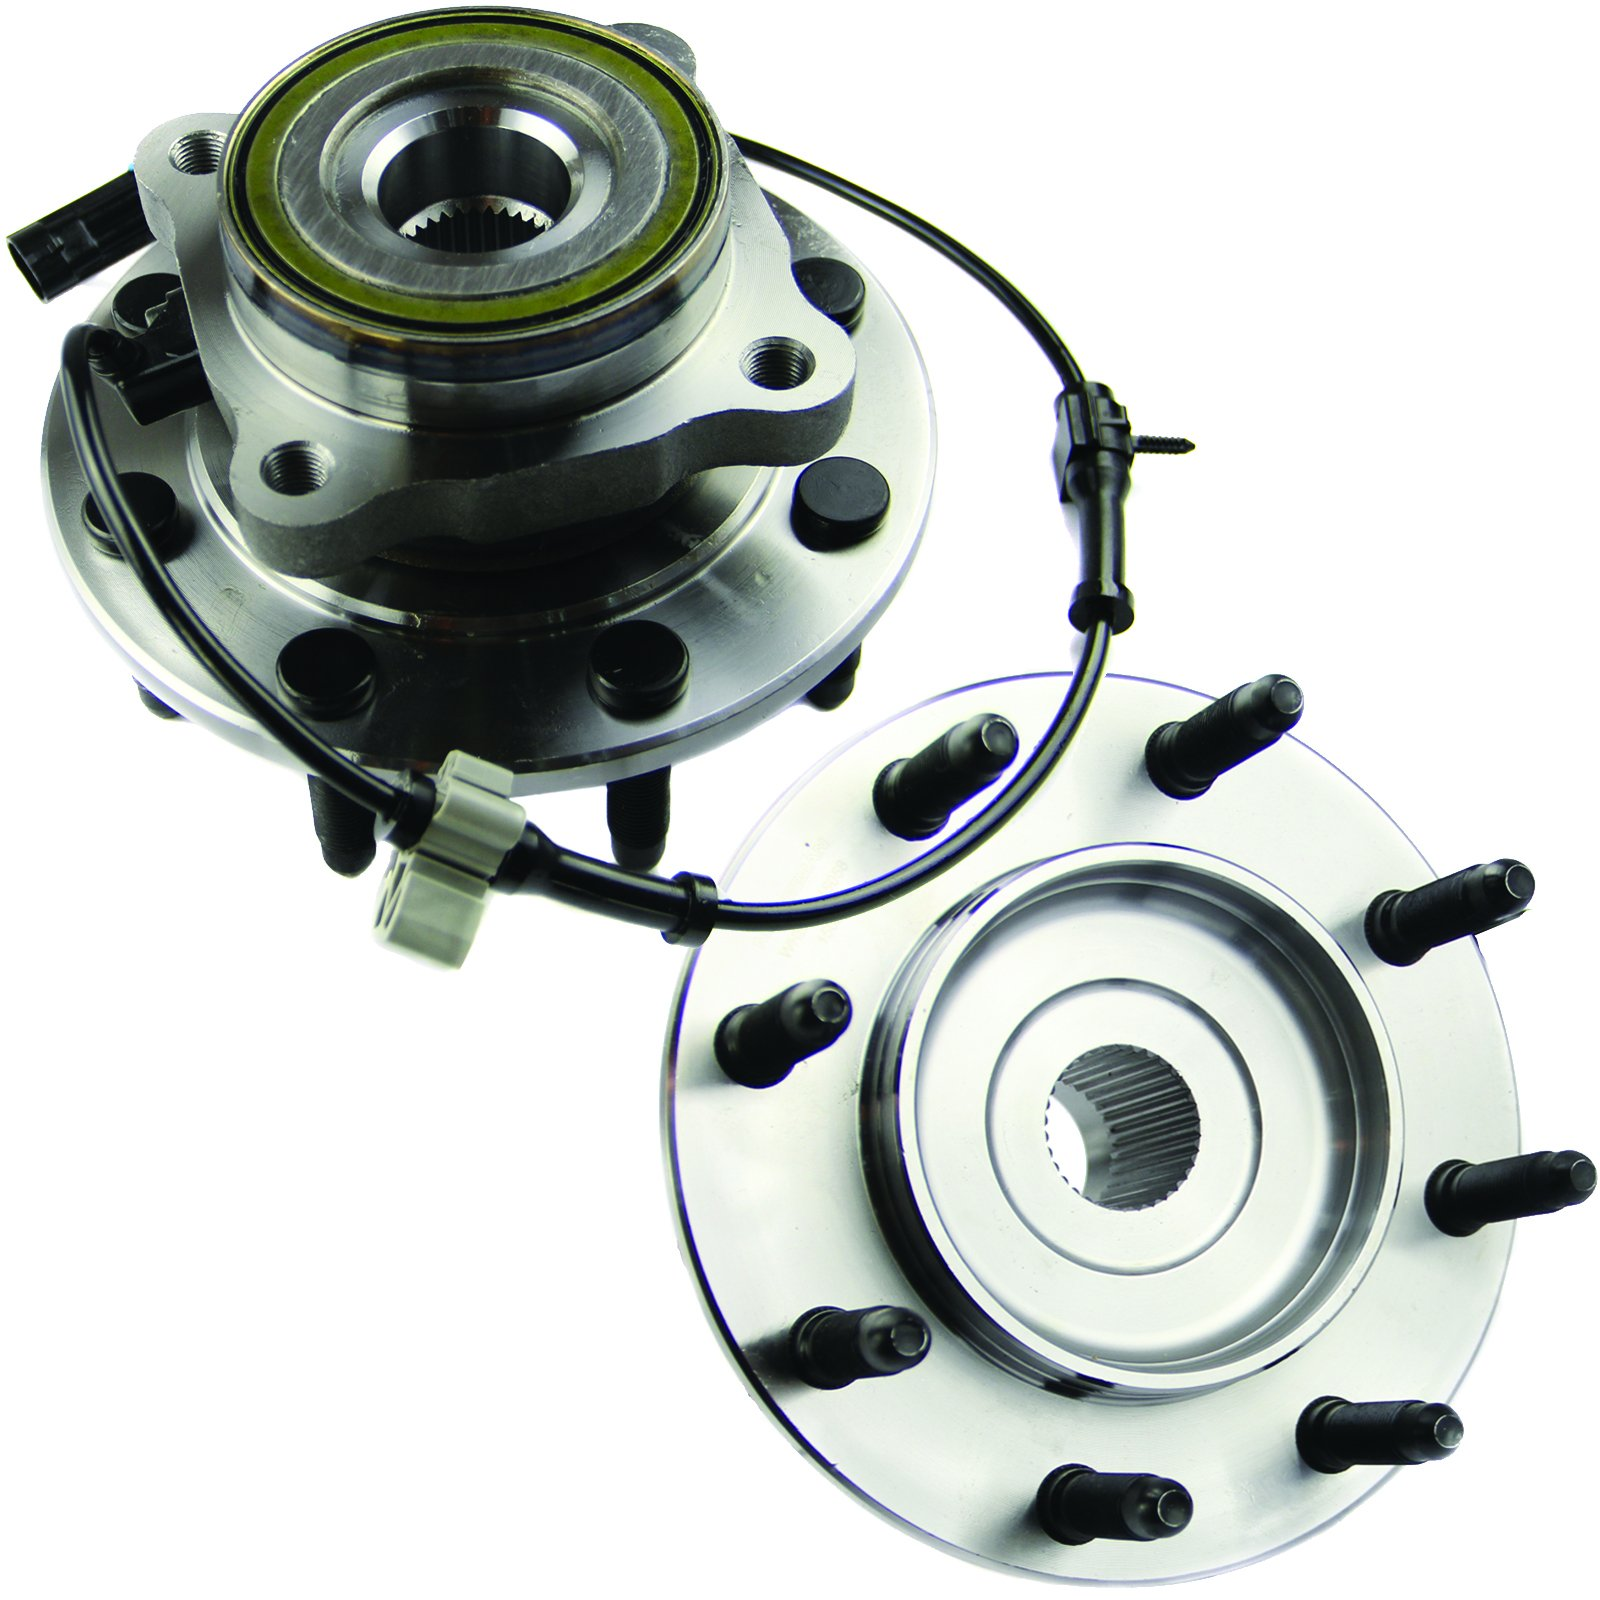 MOTORMAN 515058 Front ABS Wheel Hub and Bearing Set - Both Left and Right - Pair of 2 by MOTORMAN